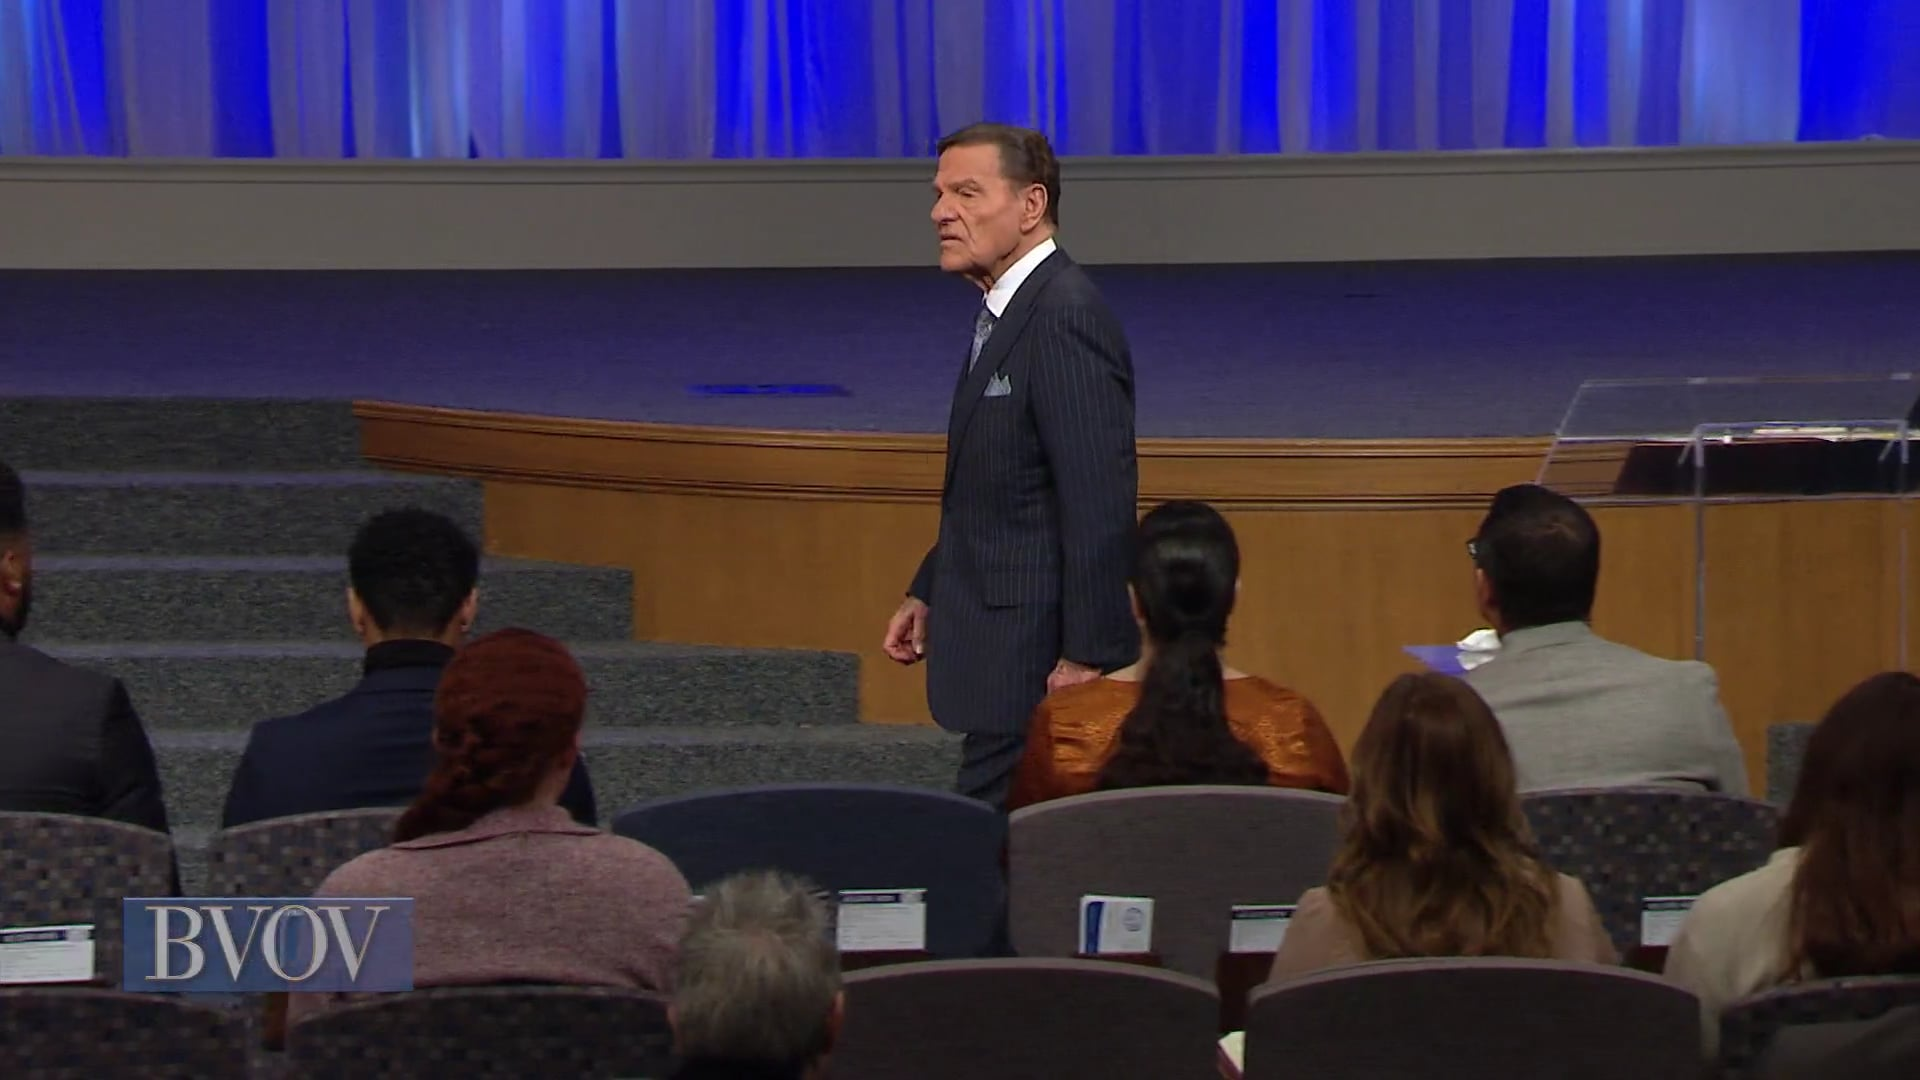 How did David become king? Watch Believer's Voice of Victory as Kenneth Copeland explains how David's encounter with Goliath was what made him king. Learn how your Goliath will make you victorious in any situation! Then, listen in as Brother Copeland shares a Goliath moment at the start of his ministry, and how believing God opened the door to a miracle breakthrough.